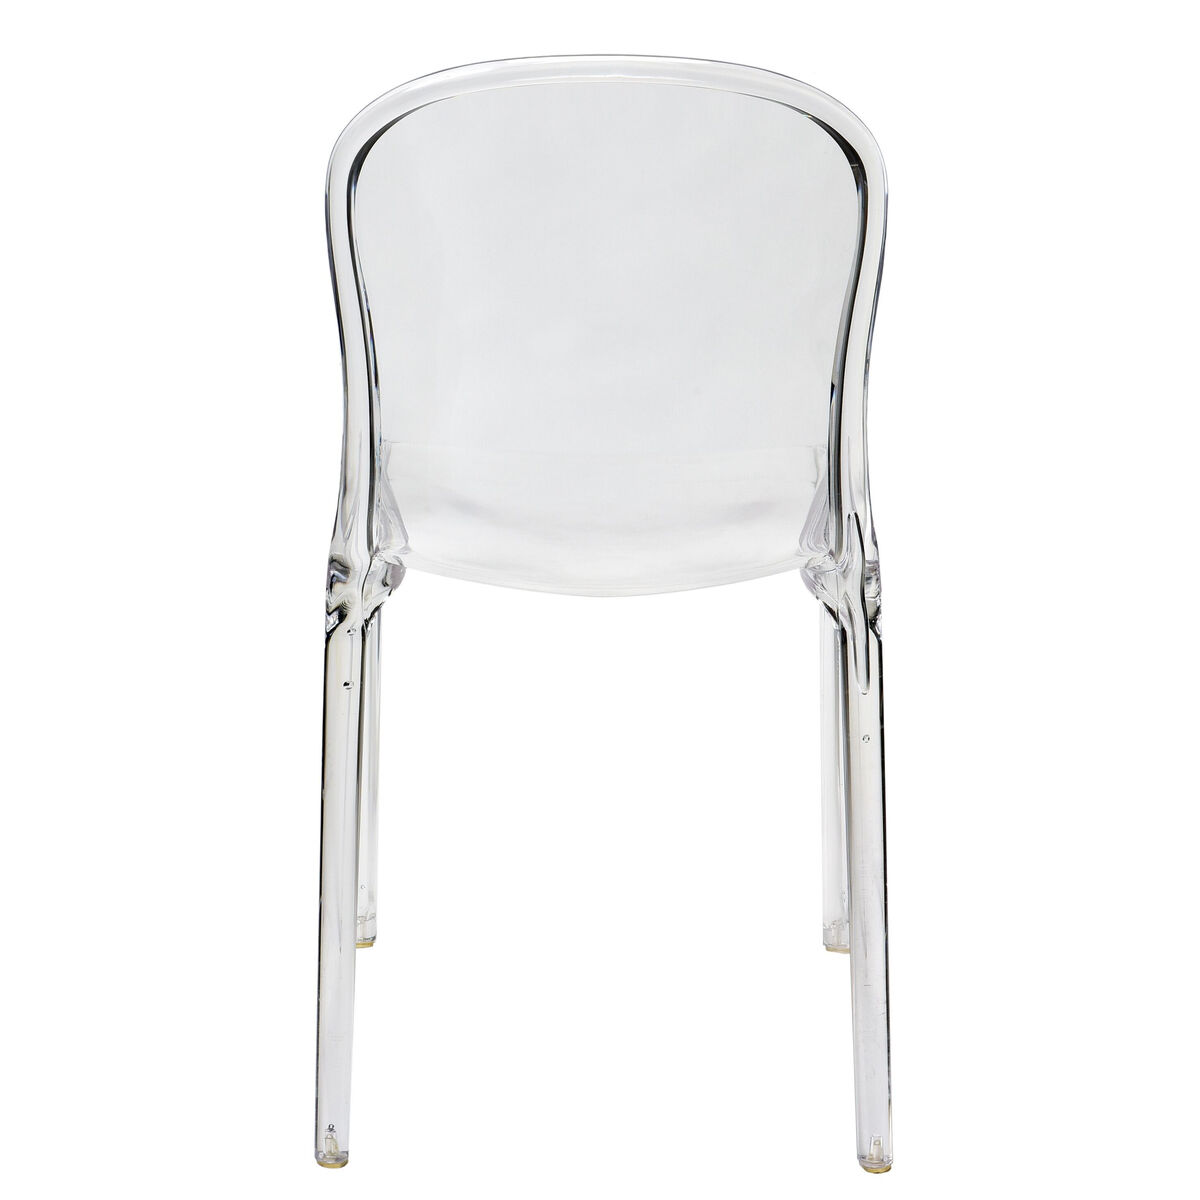 Images. Genoa Polycarbonate Dining Chair ...